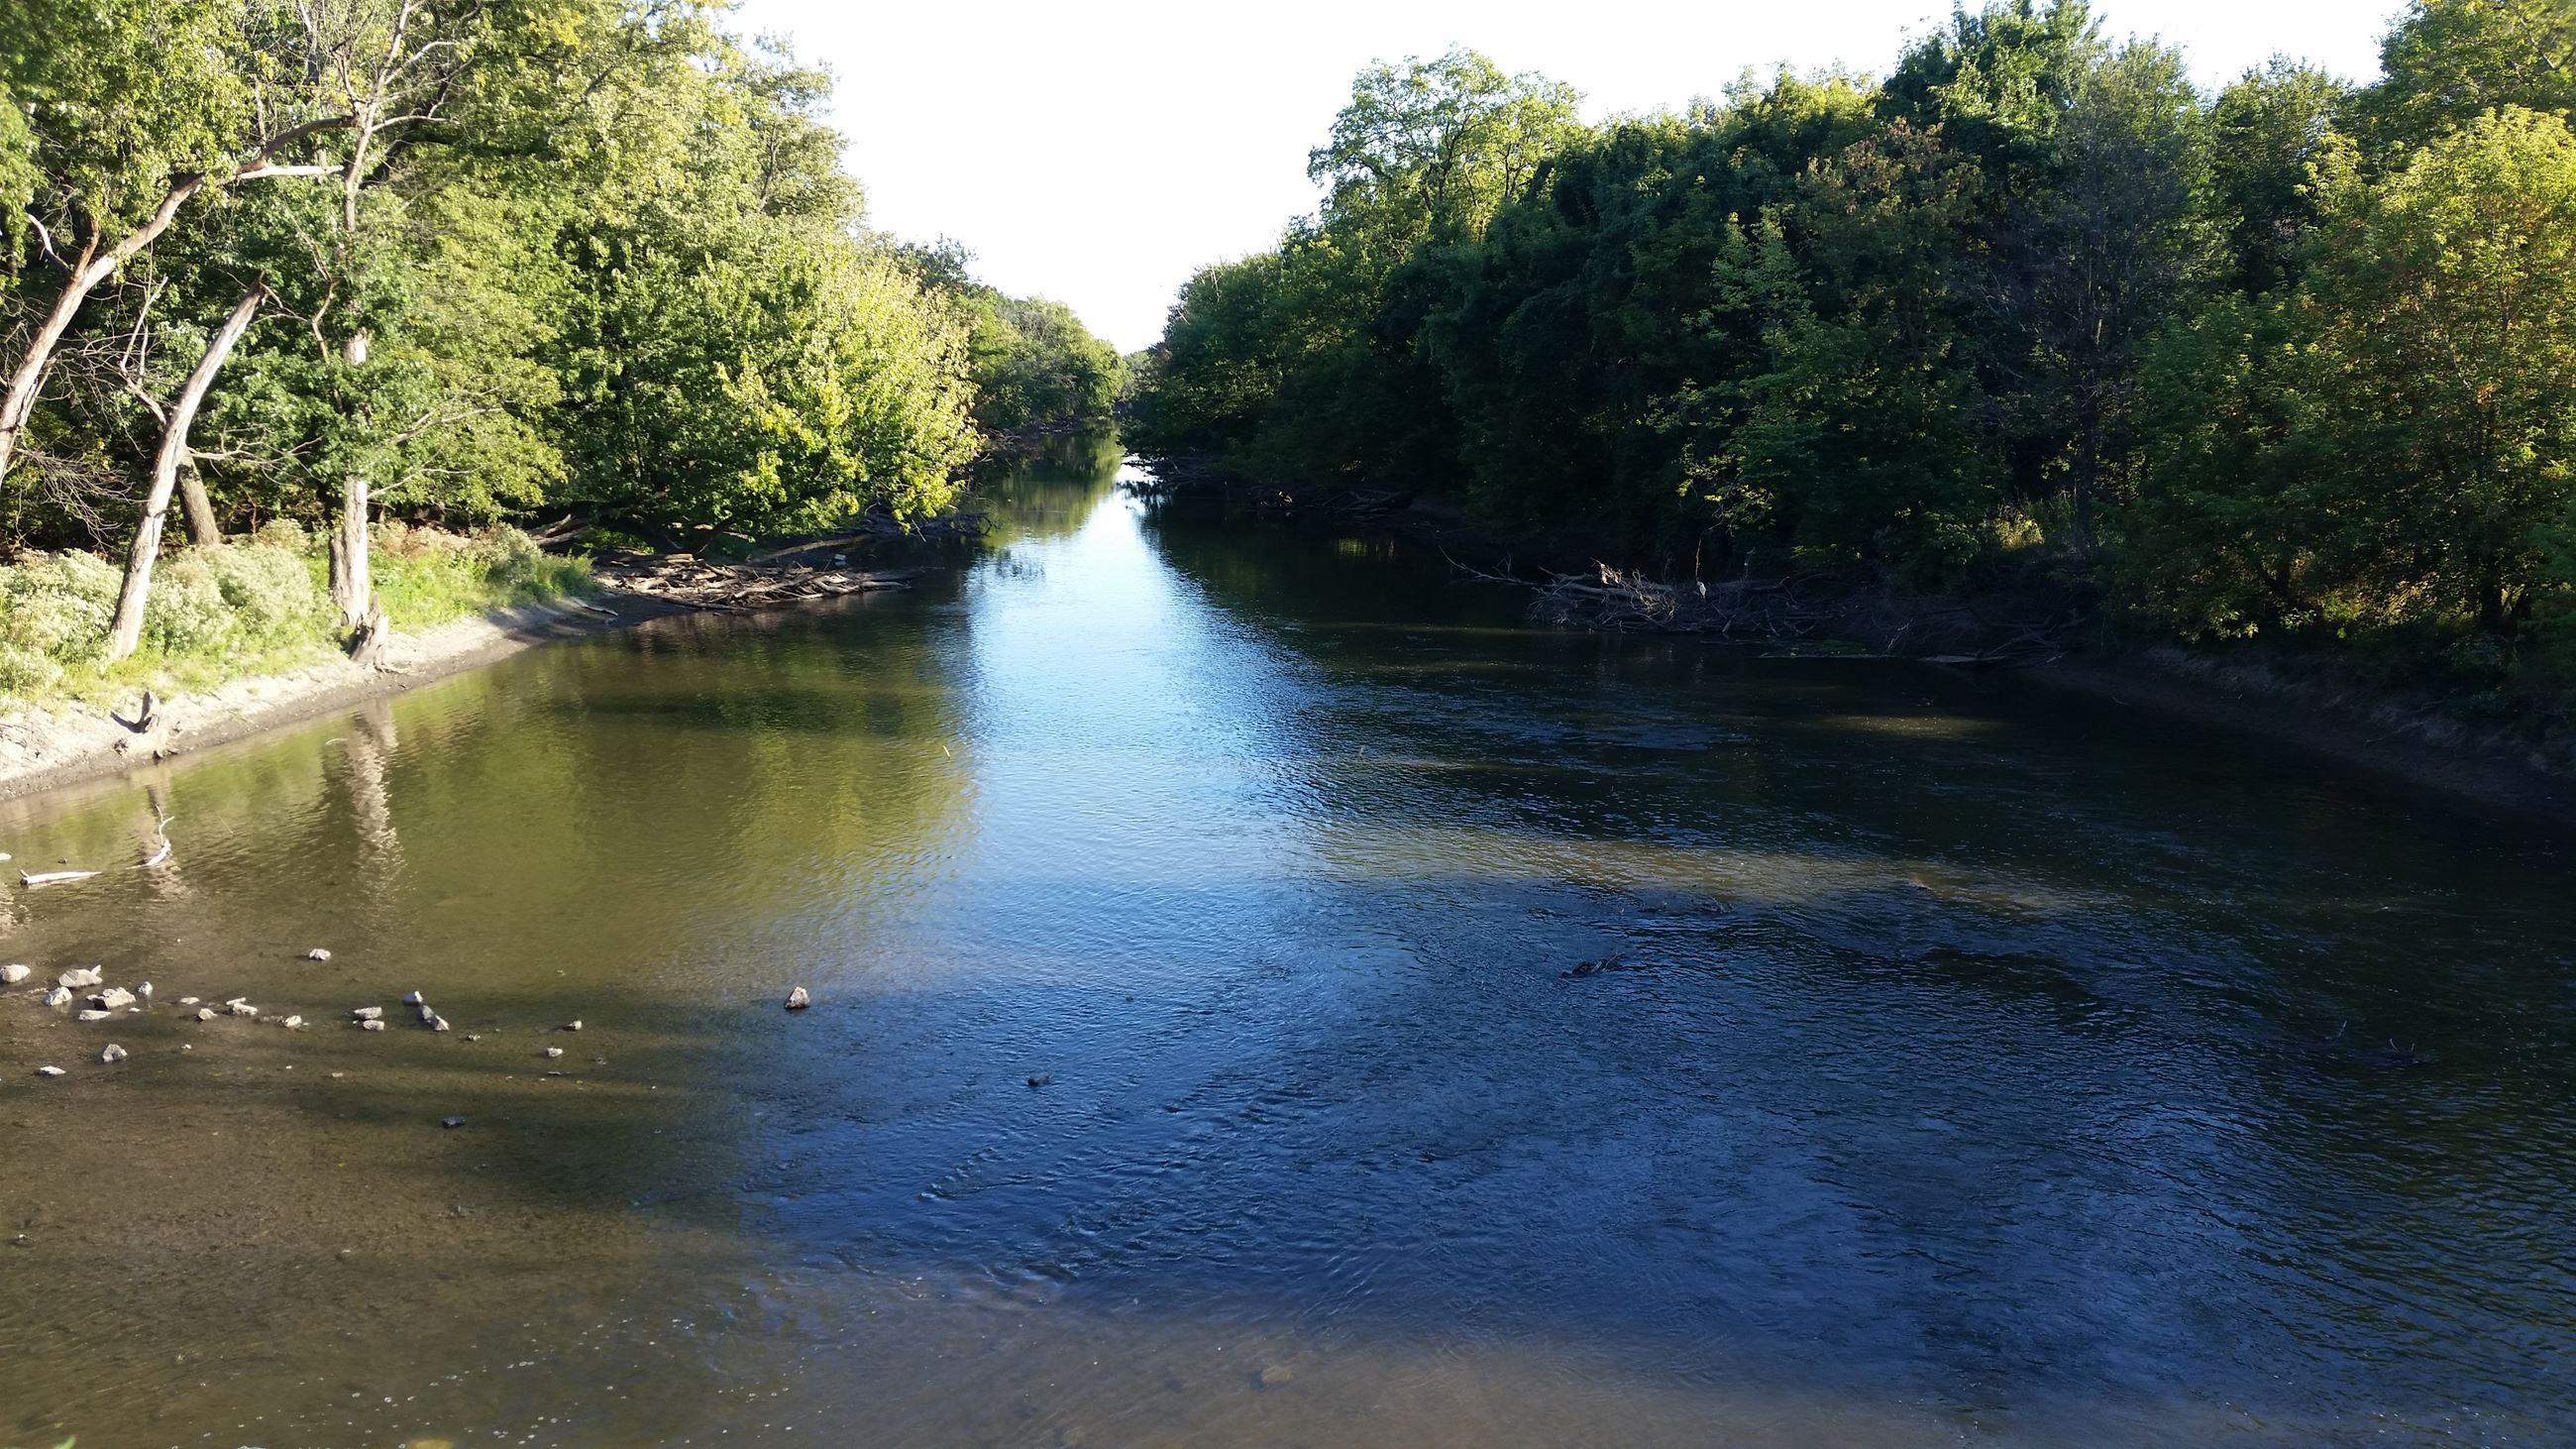 Standing above the Des Plaines River as it gently flows away between the tree lined banks